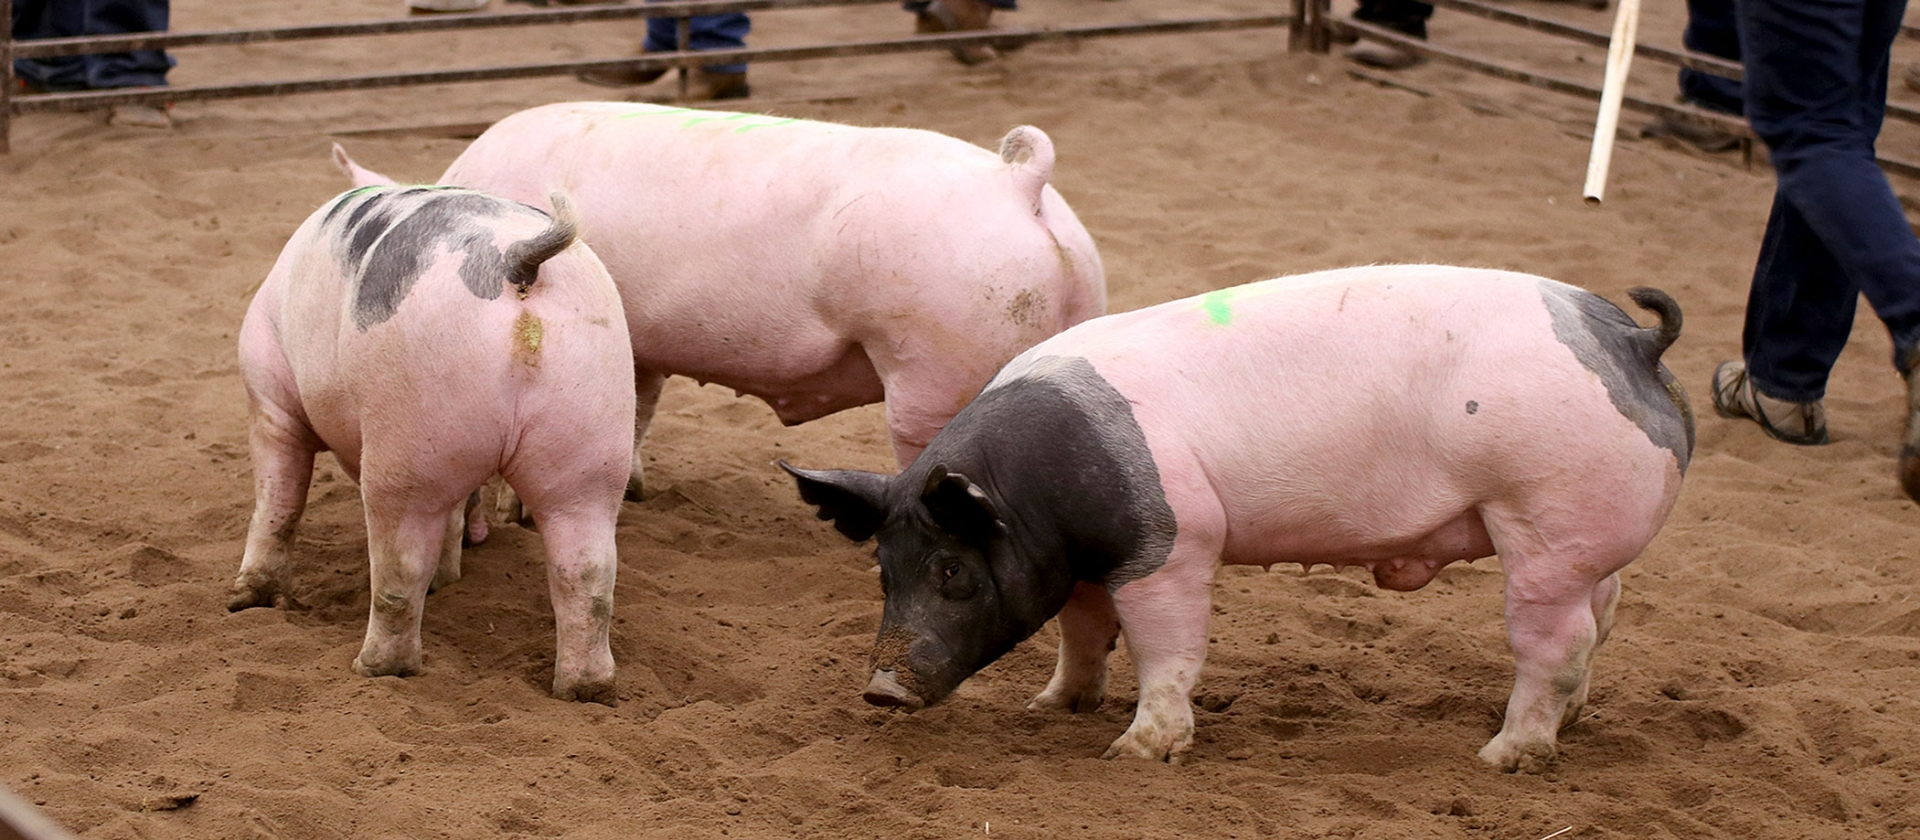 three pigs in a pen.